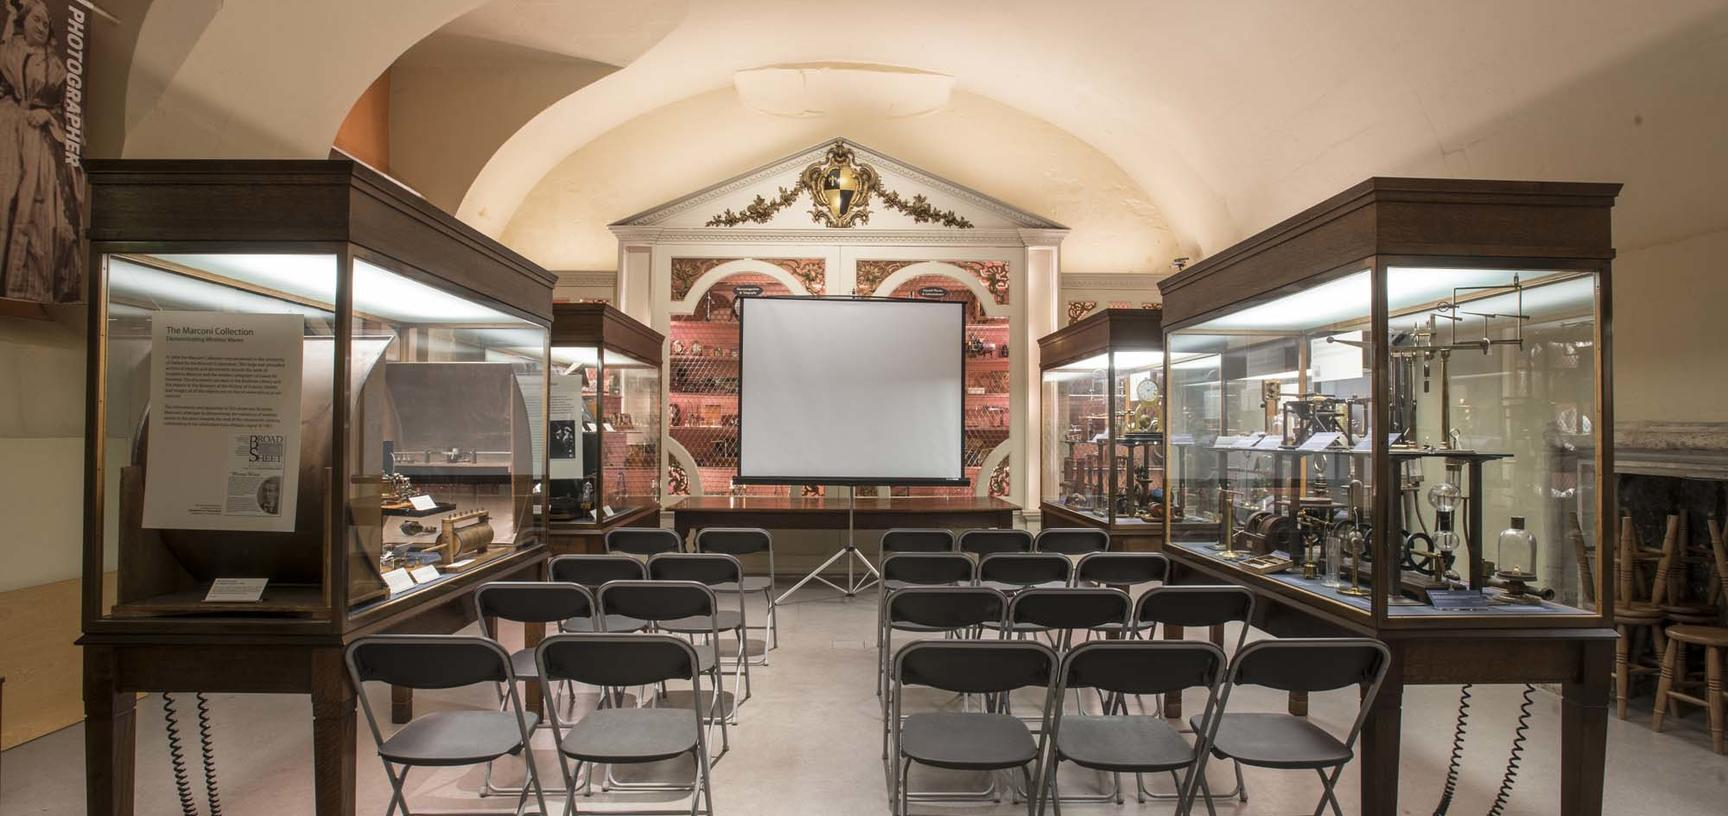 The Basement Gallery set up for lectures.